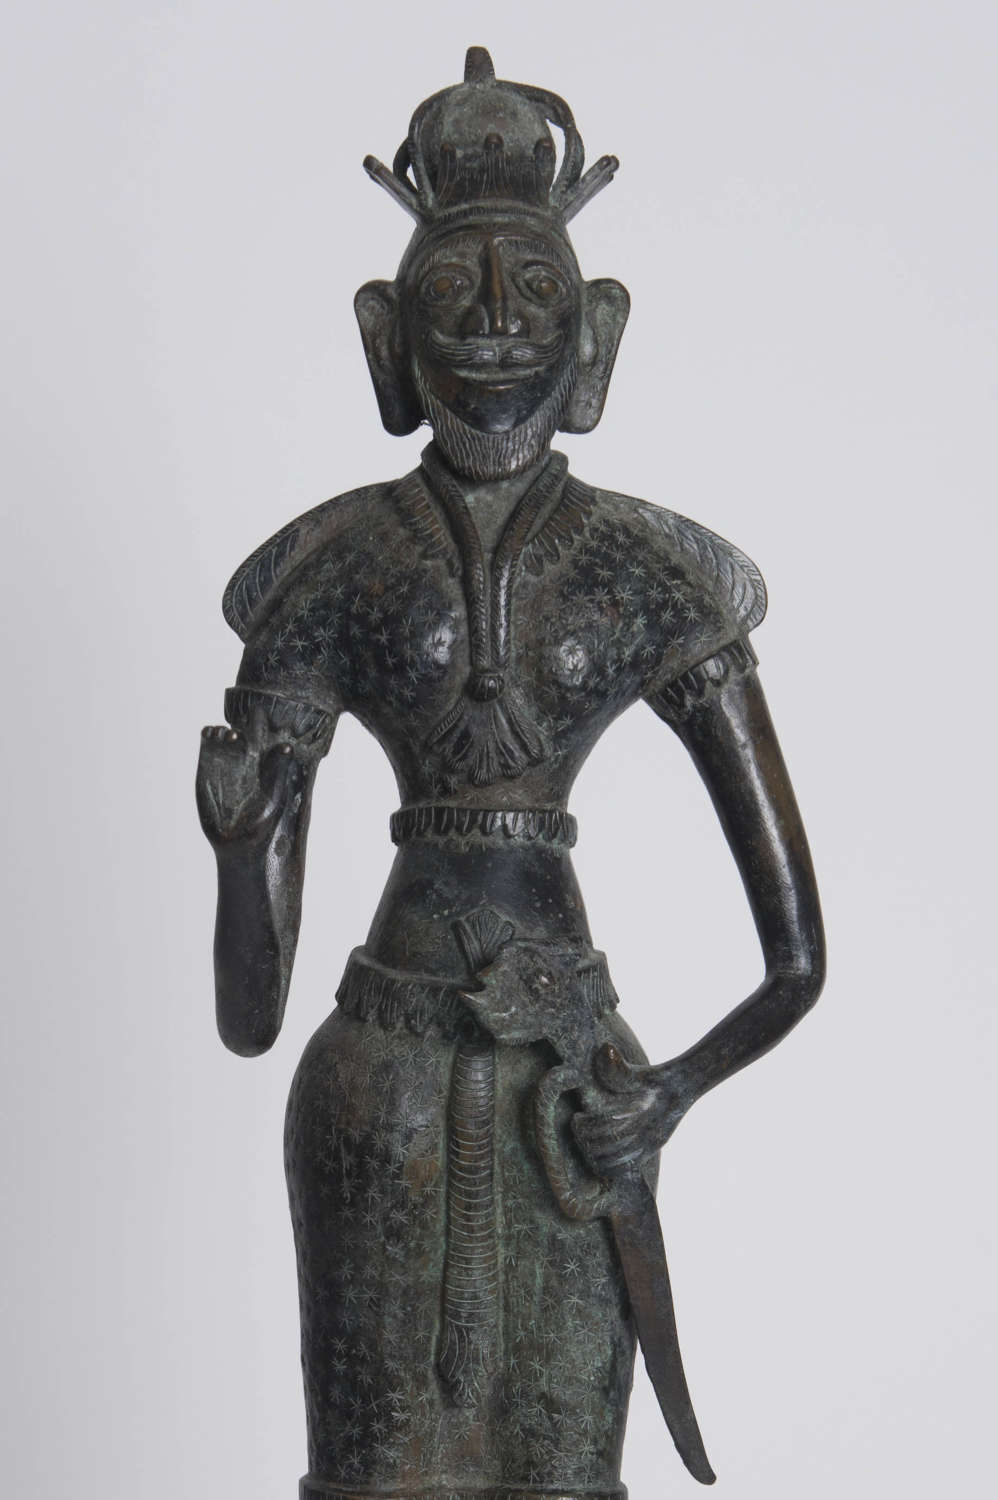 SRI LANKAN BRONZE FIGURE, 19TH CENTURY